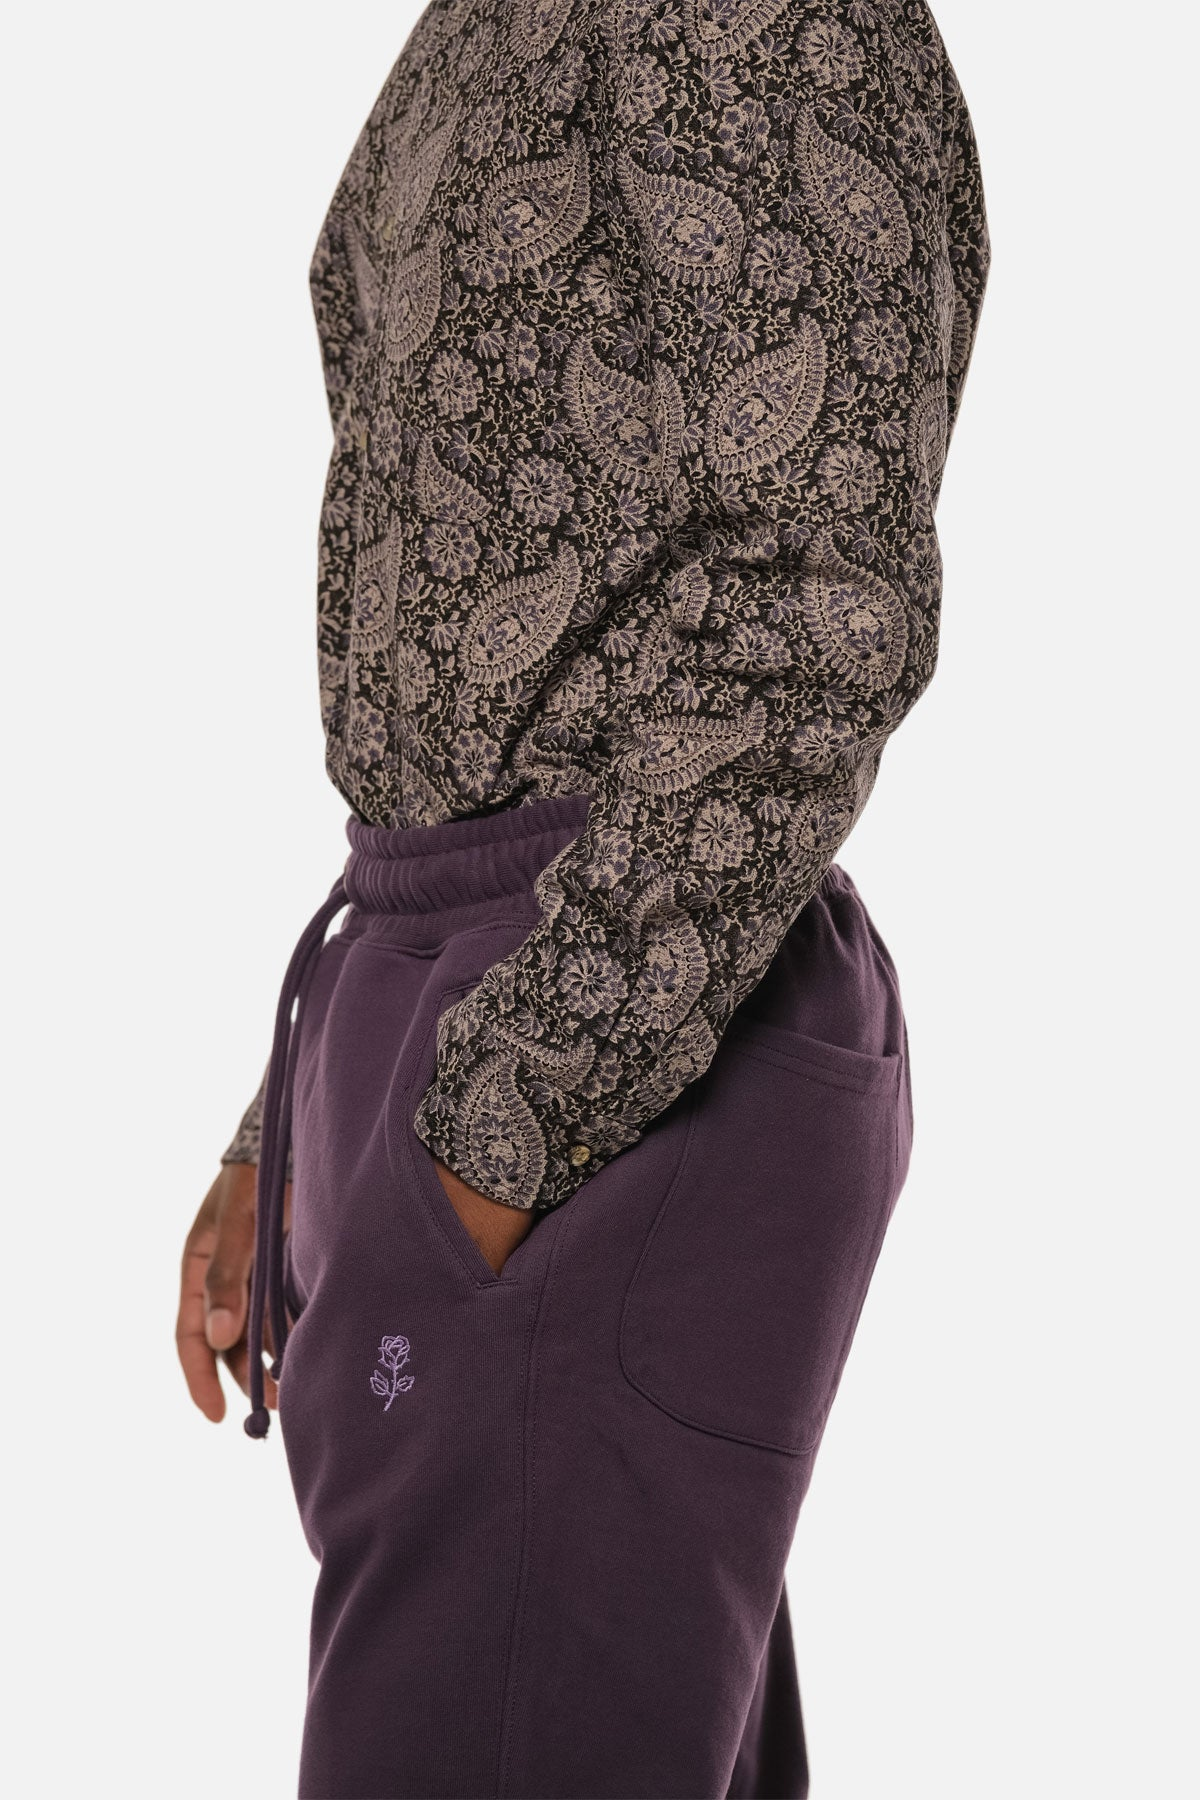 MORTON AVE PANT IN PURPLE - Fortune Goods